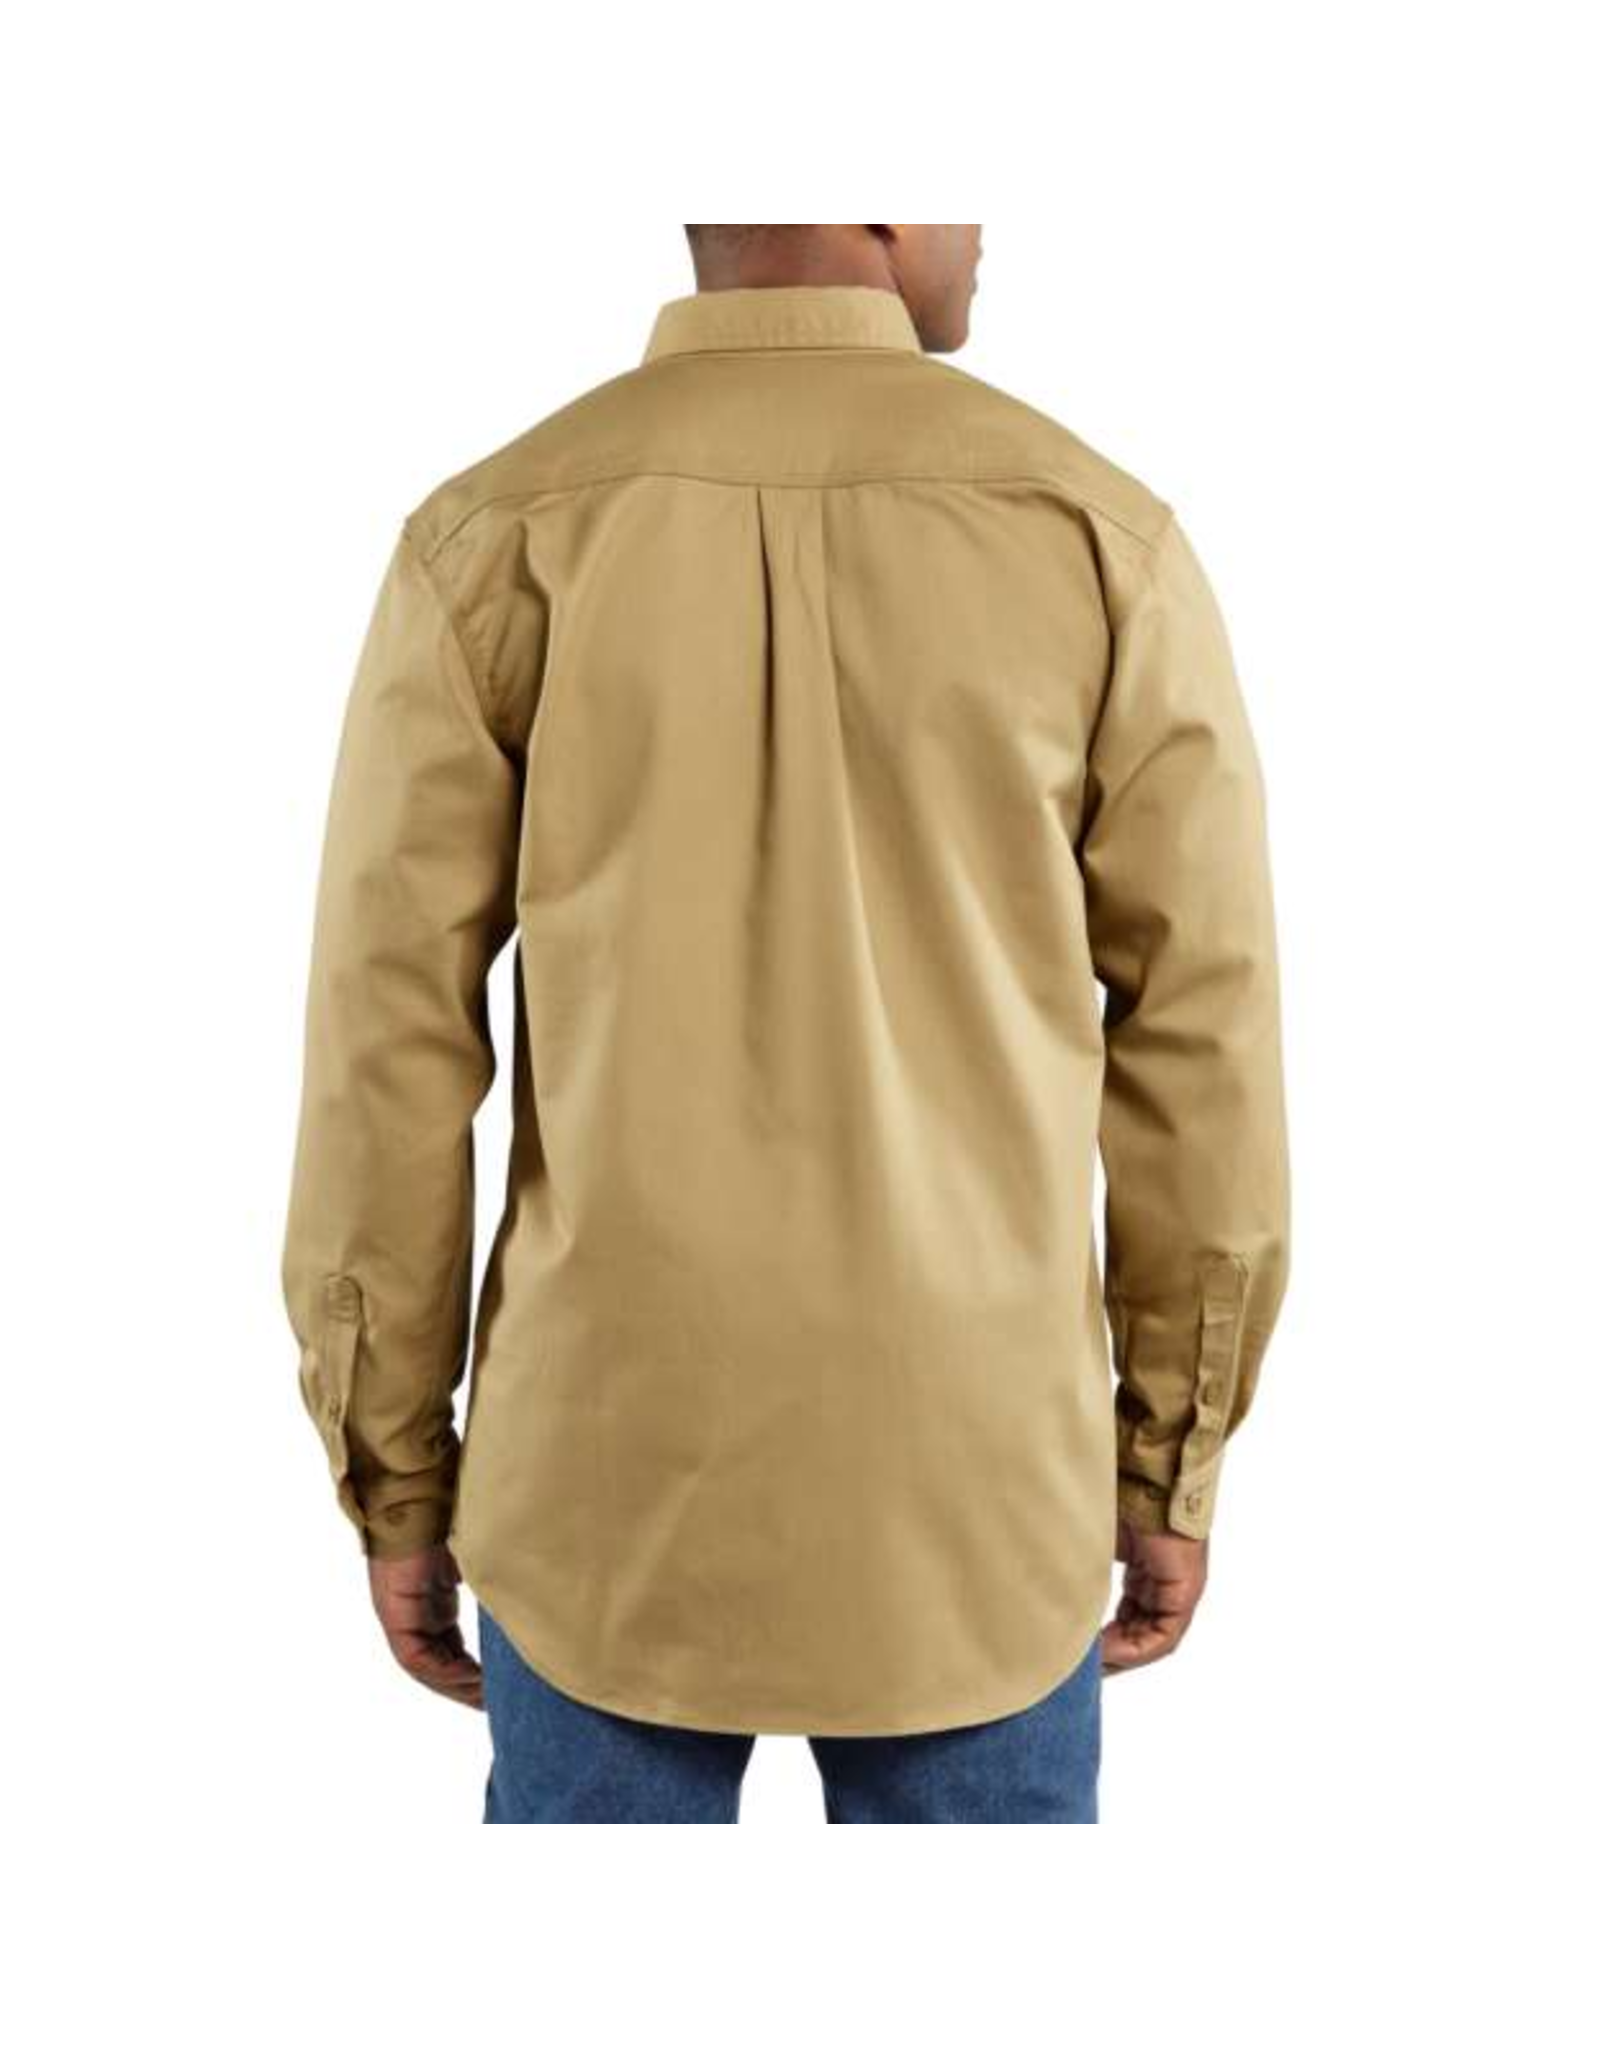 Flame-Resistant Twill Shirt With Pocket Flap